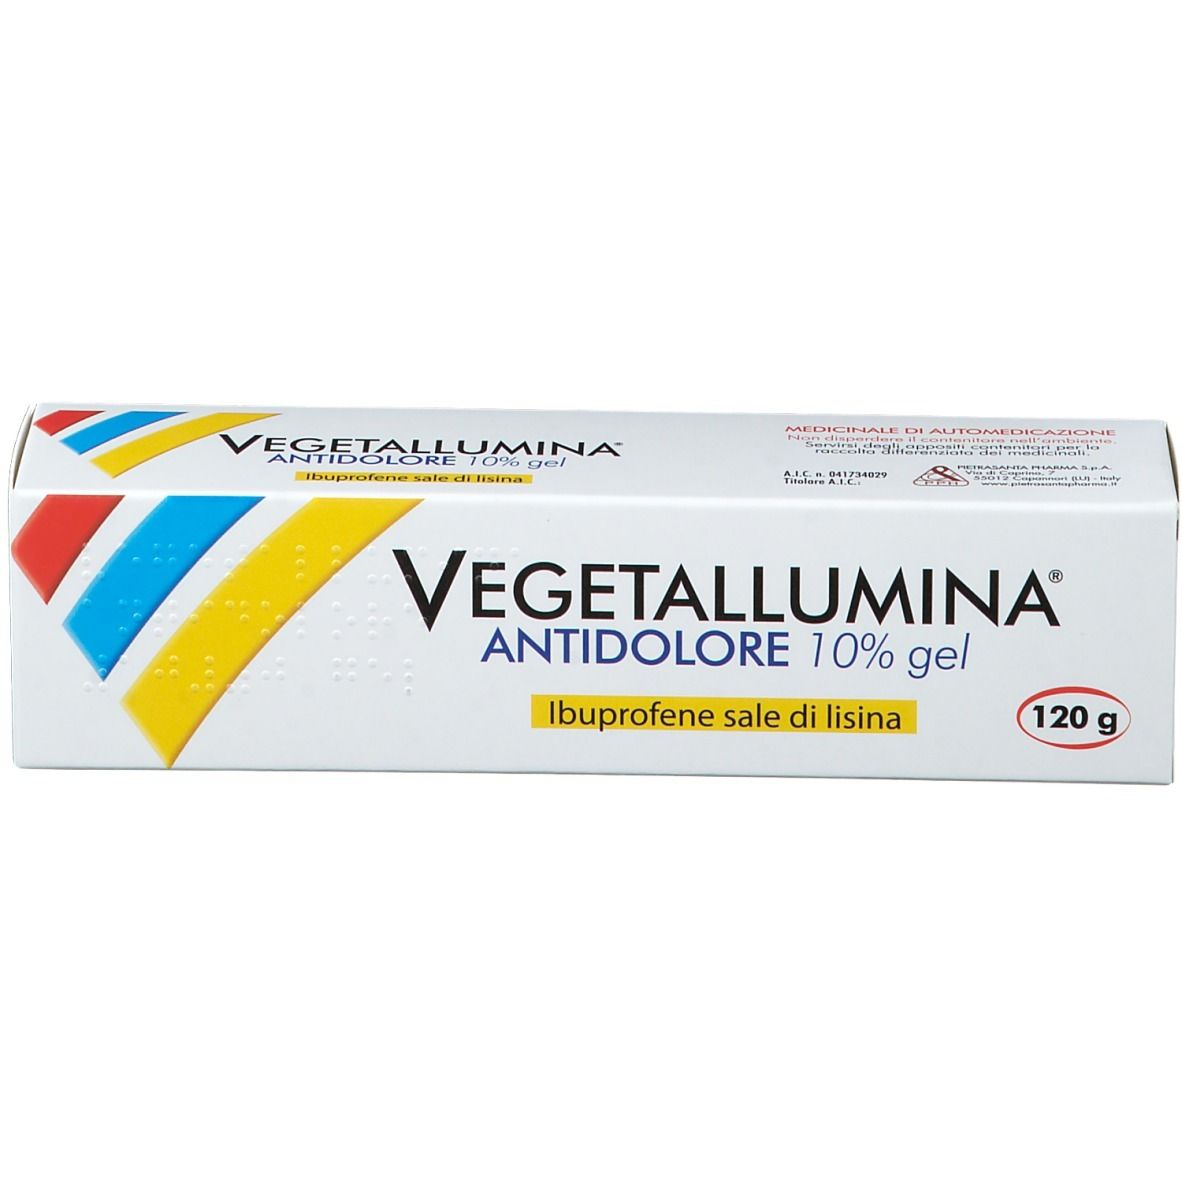 VEGETALLUMINA ANTIDOLORE 10% 120 gr - Farmaunclick.it